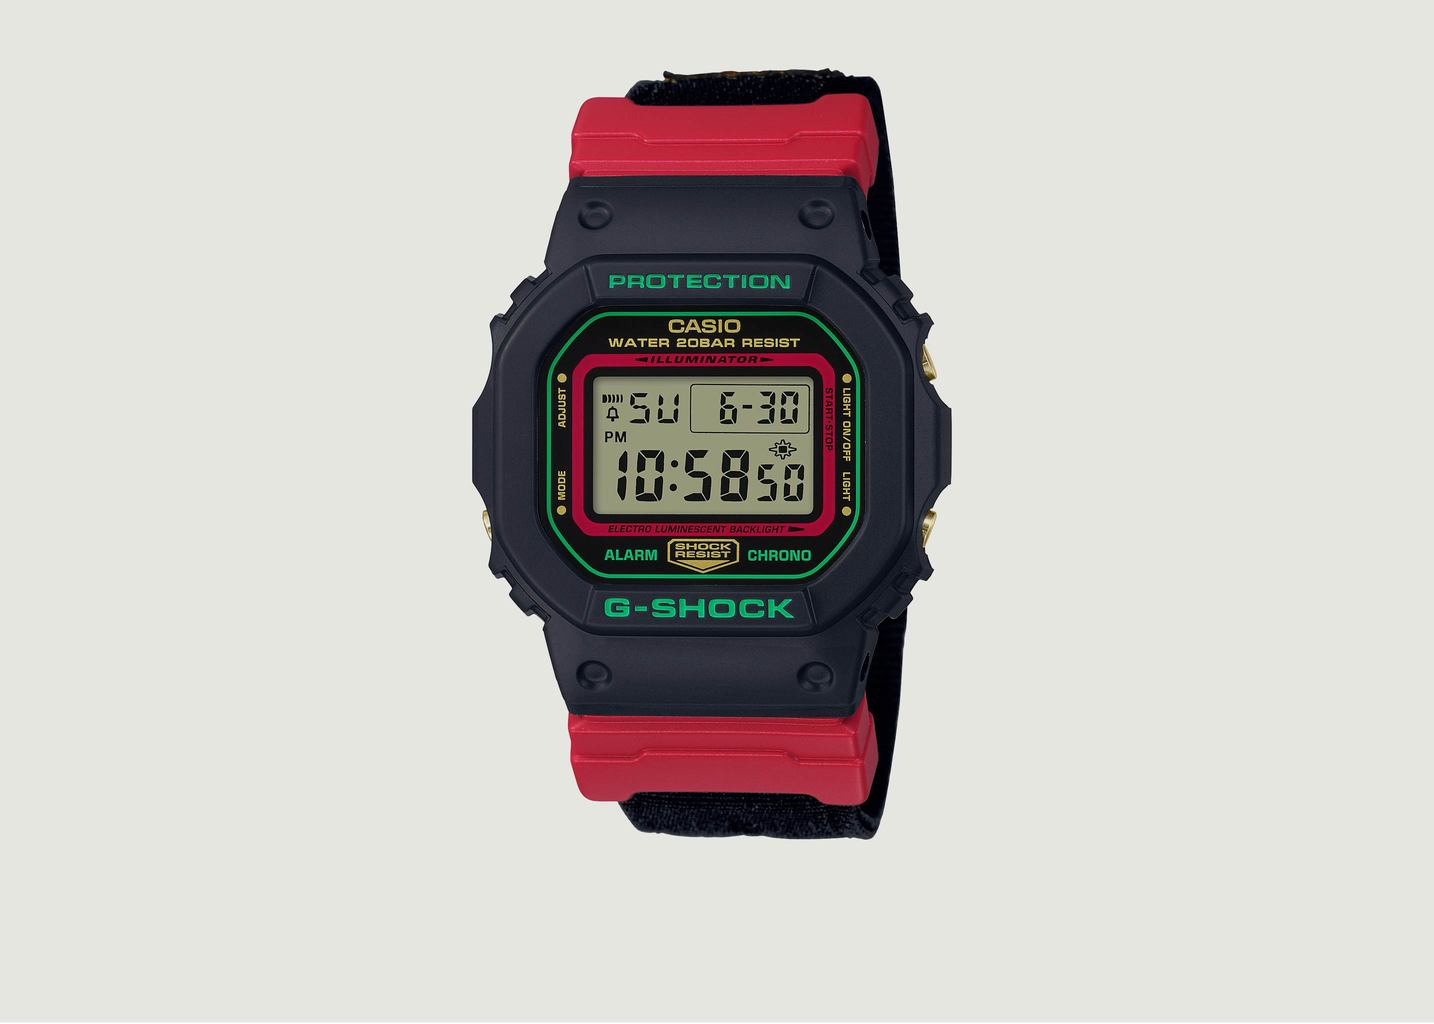 Montre G-SHOCK DW-5600THC - Casio G-SHOCK